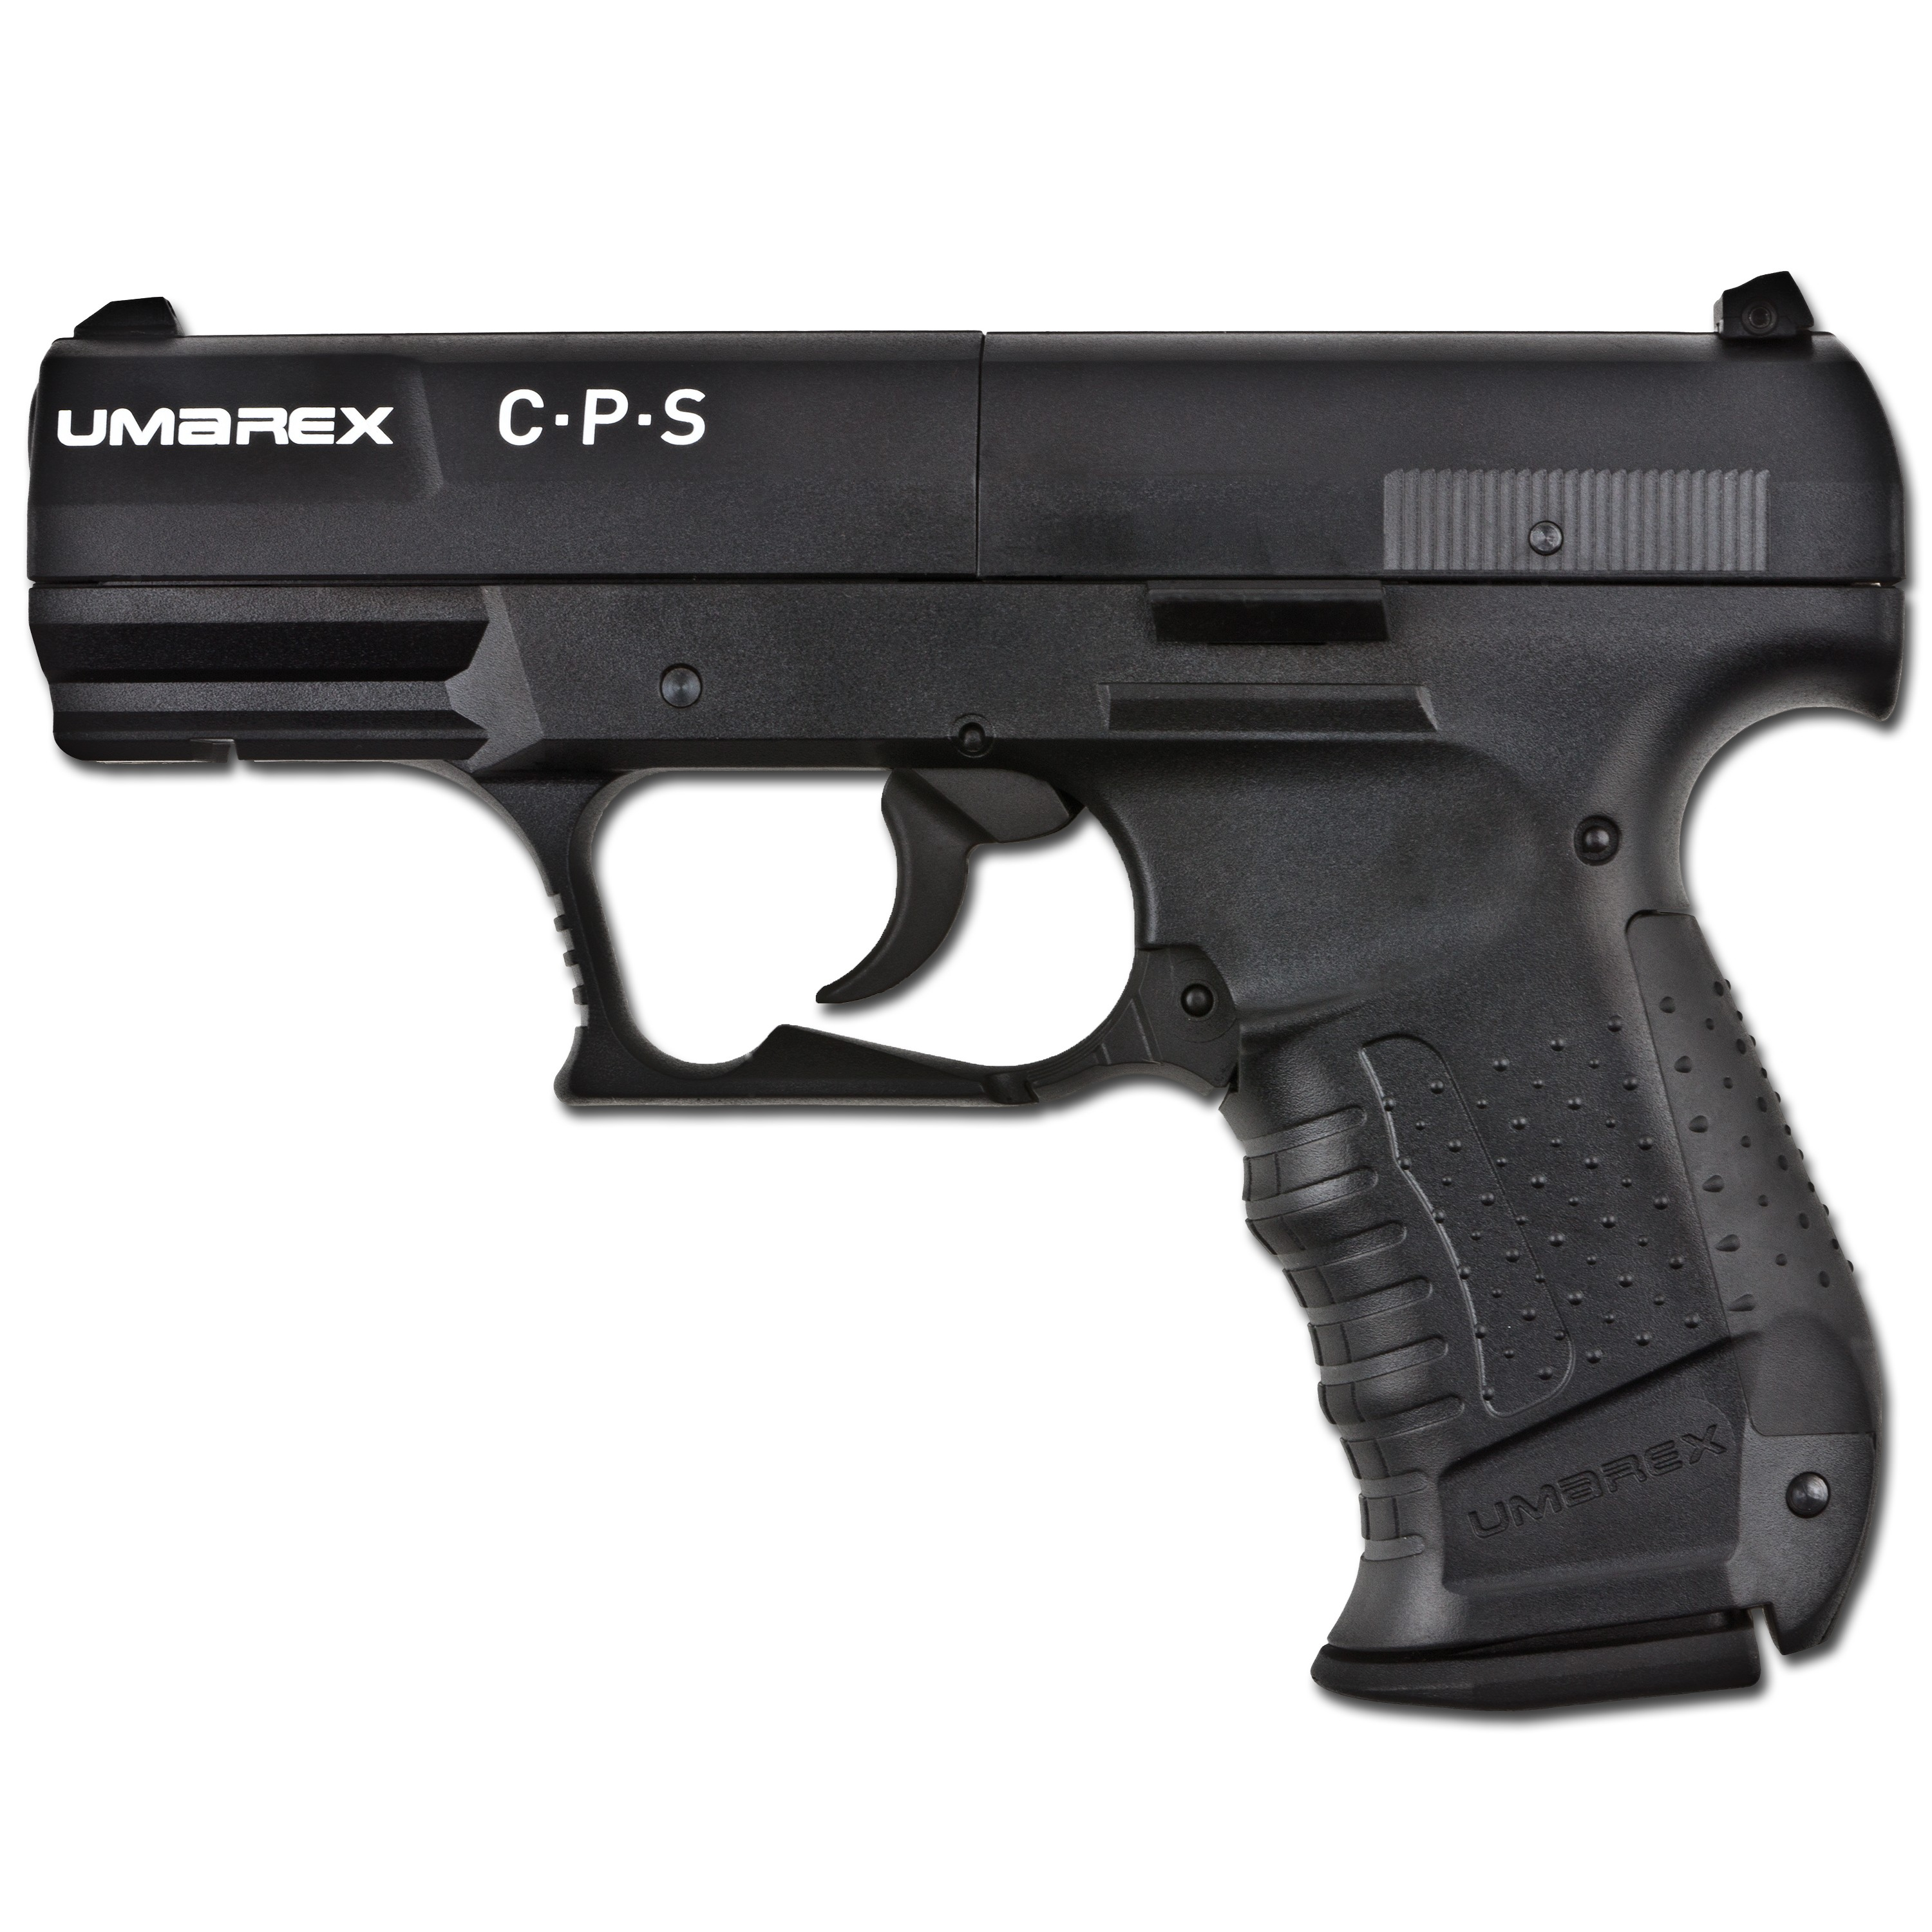 Pistol Walther CP Sport gunmetal finished